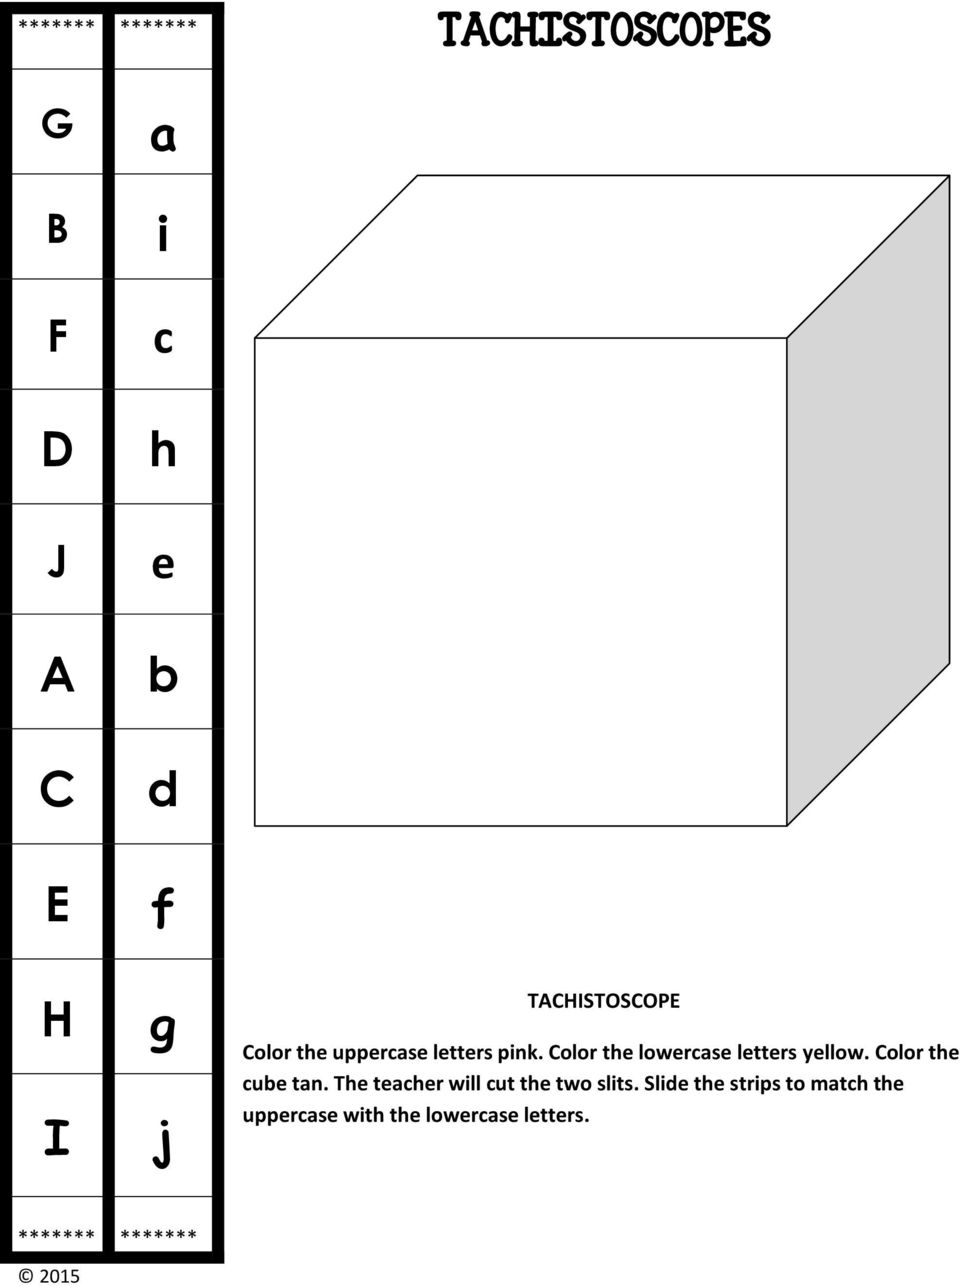 Color the lowercase letters yellow. Color the cube tan.